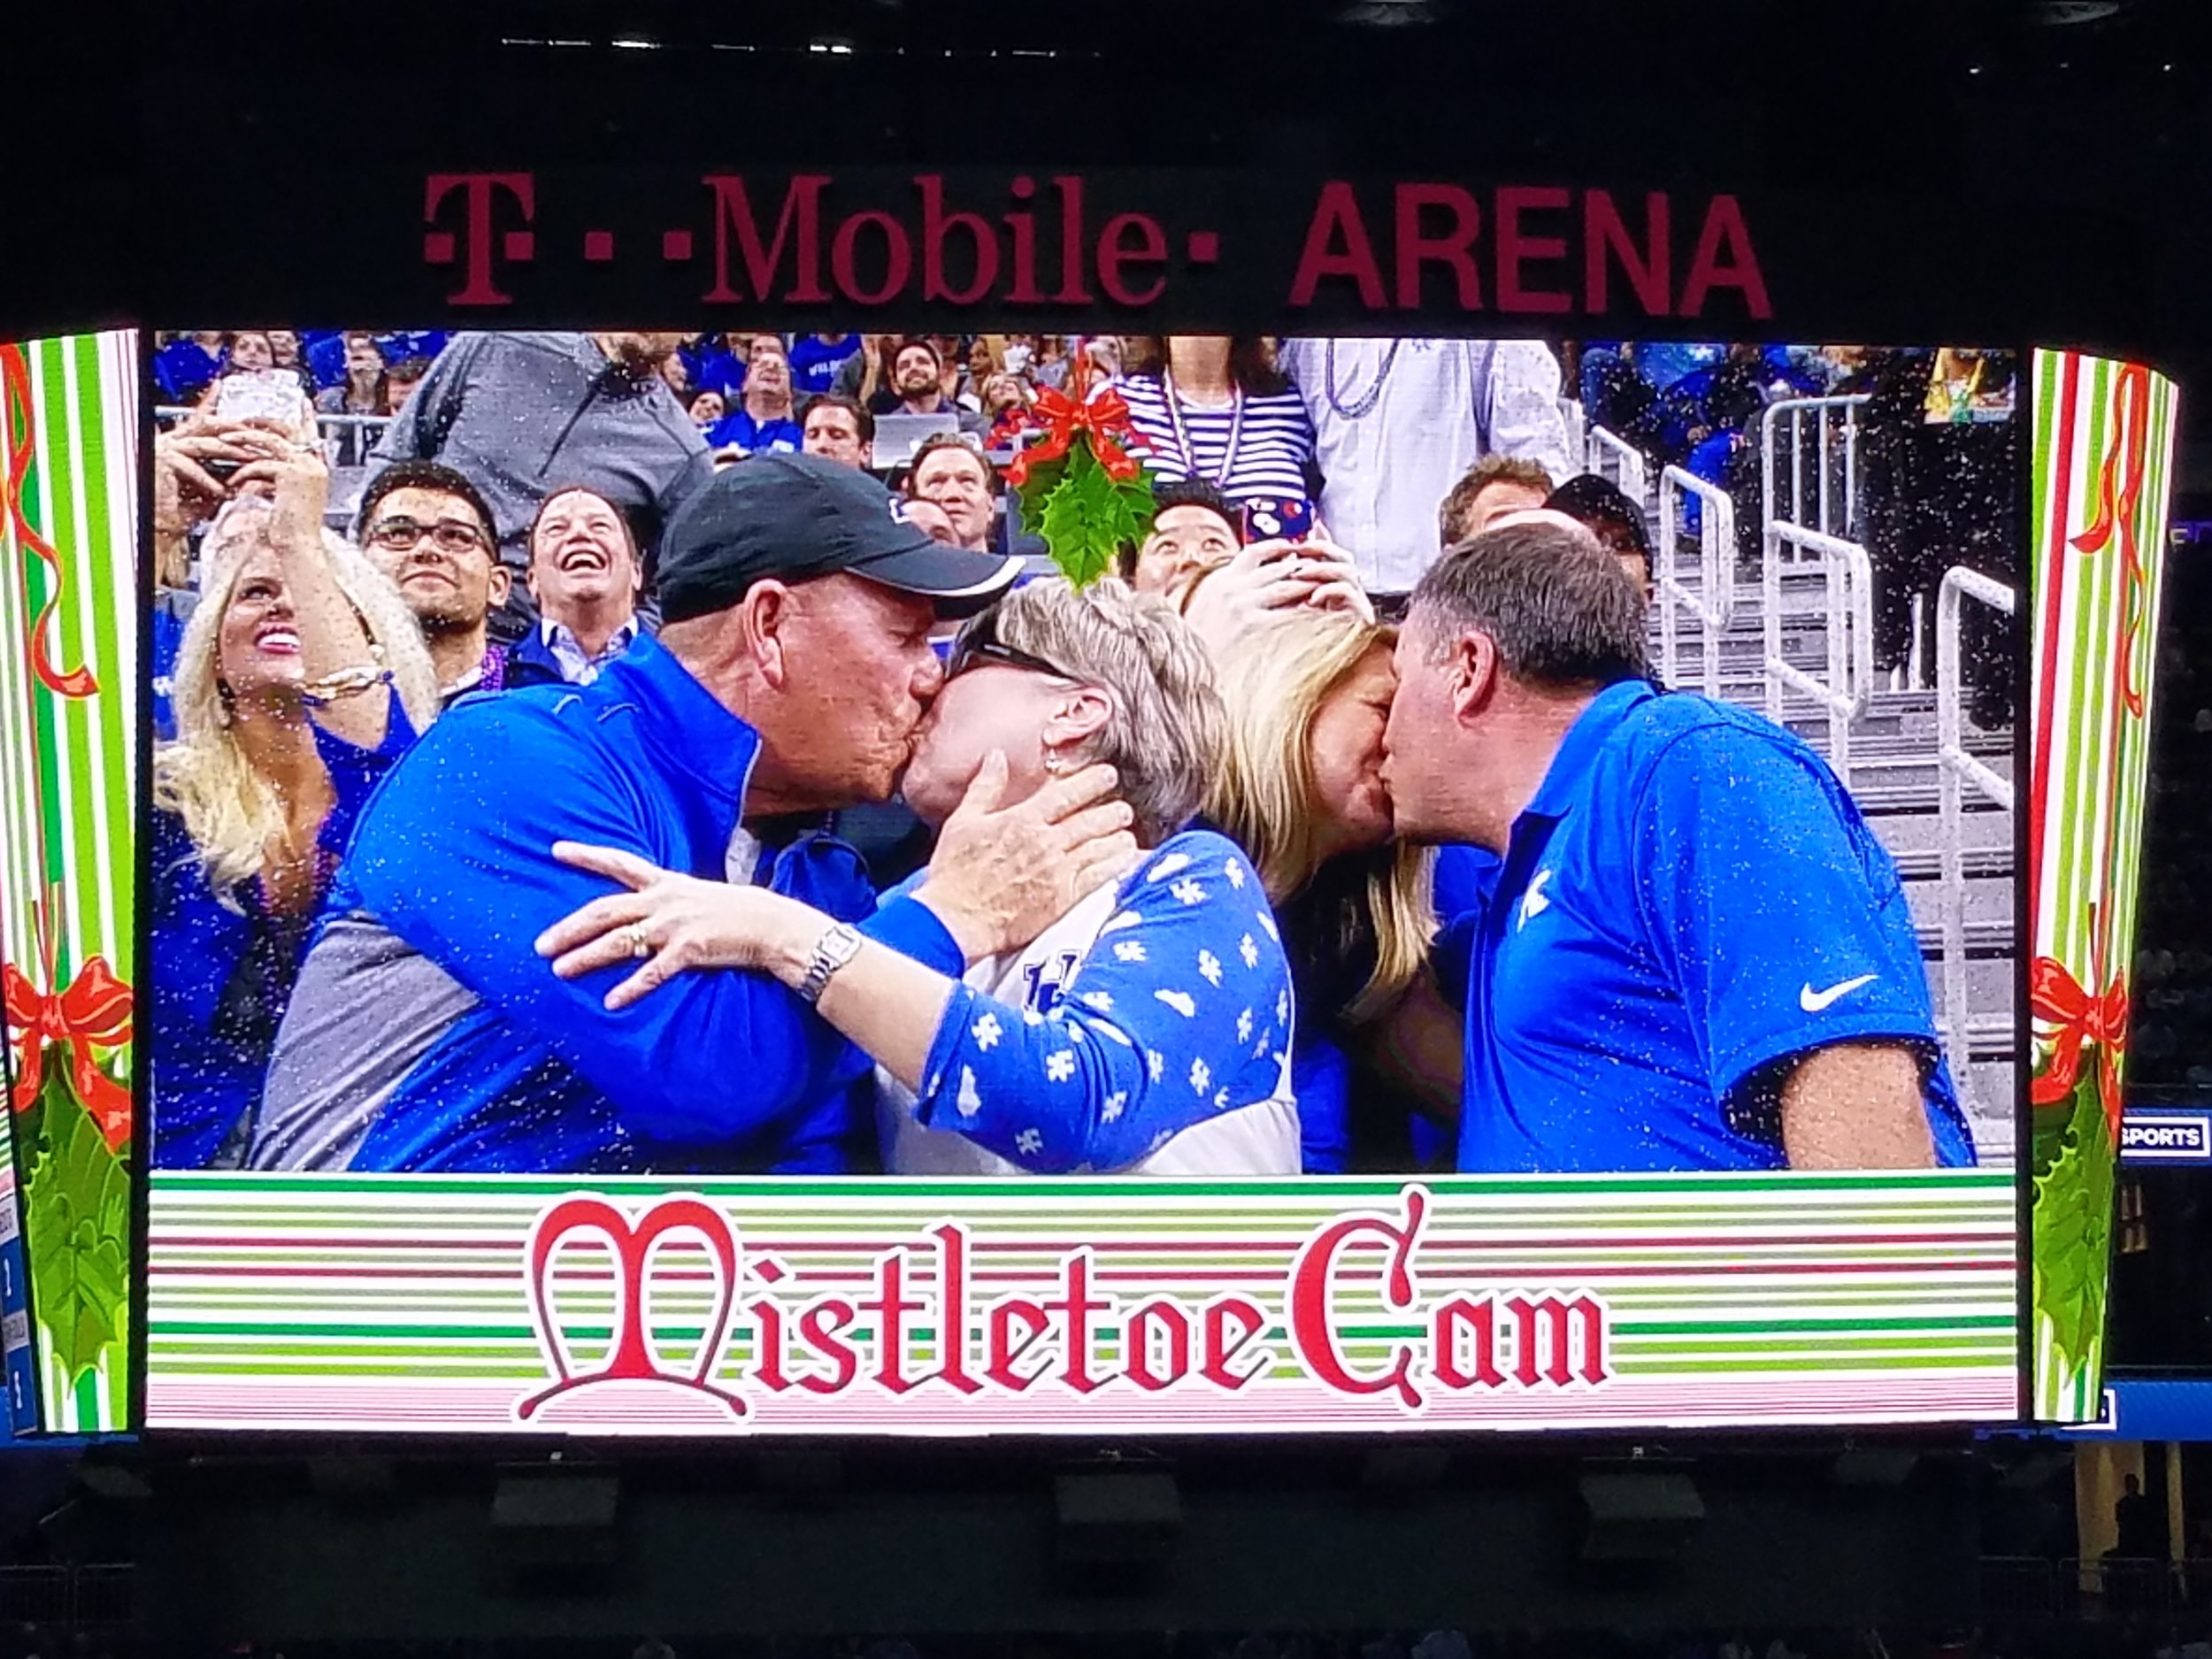 The Mistletoe Cam is a great holiday twist on a traditional Kiss Cam. We featured it once during each game to highly spirited crowds.